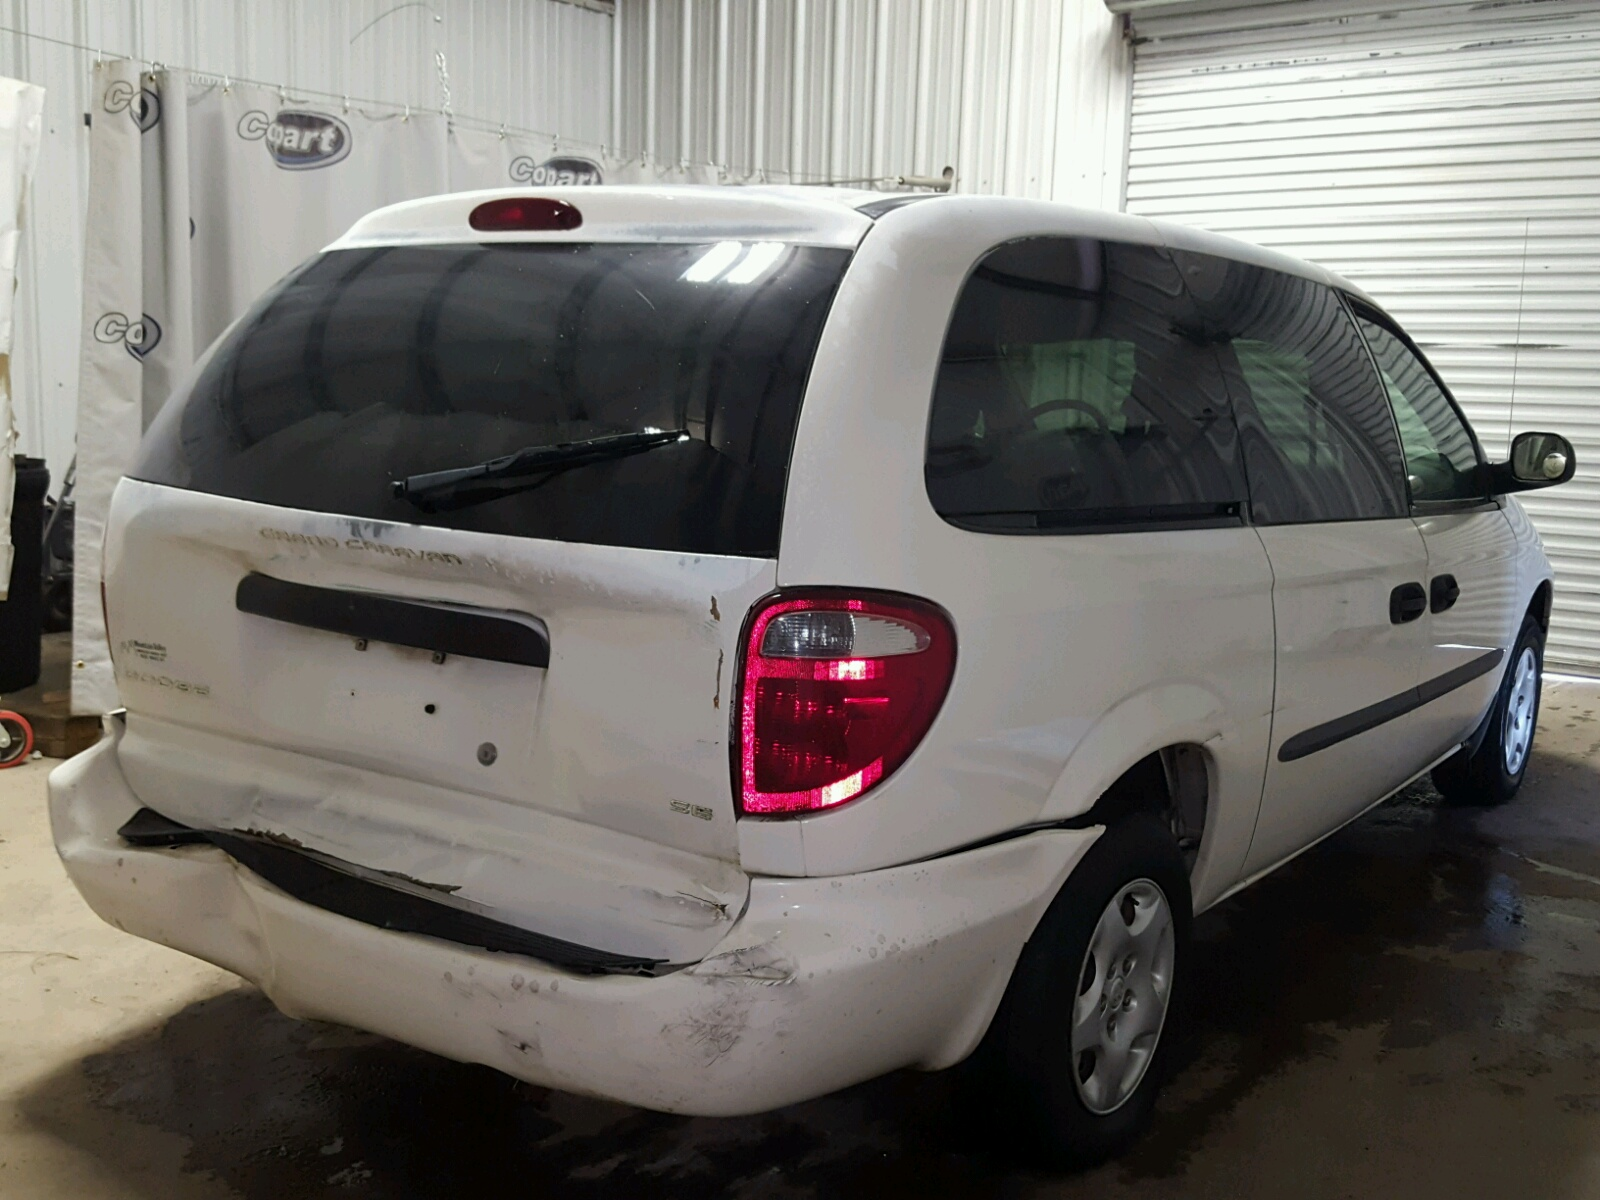 2003 Dodge Grand Caravan For Sale At Copart Tifton Ga Lot 44574938